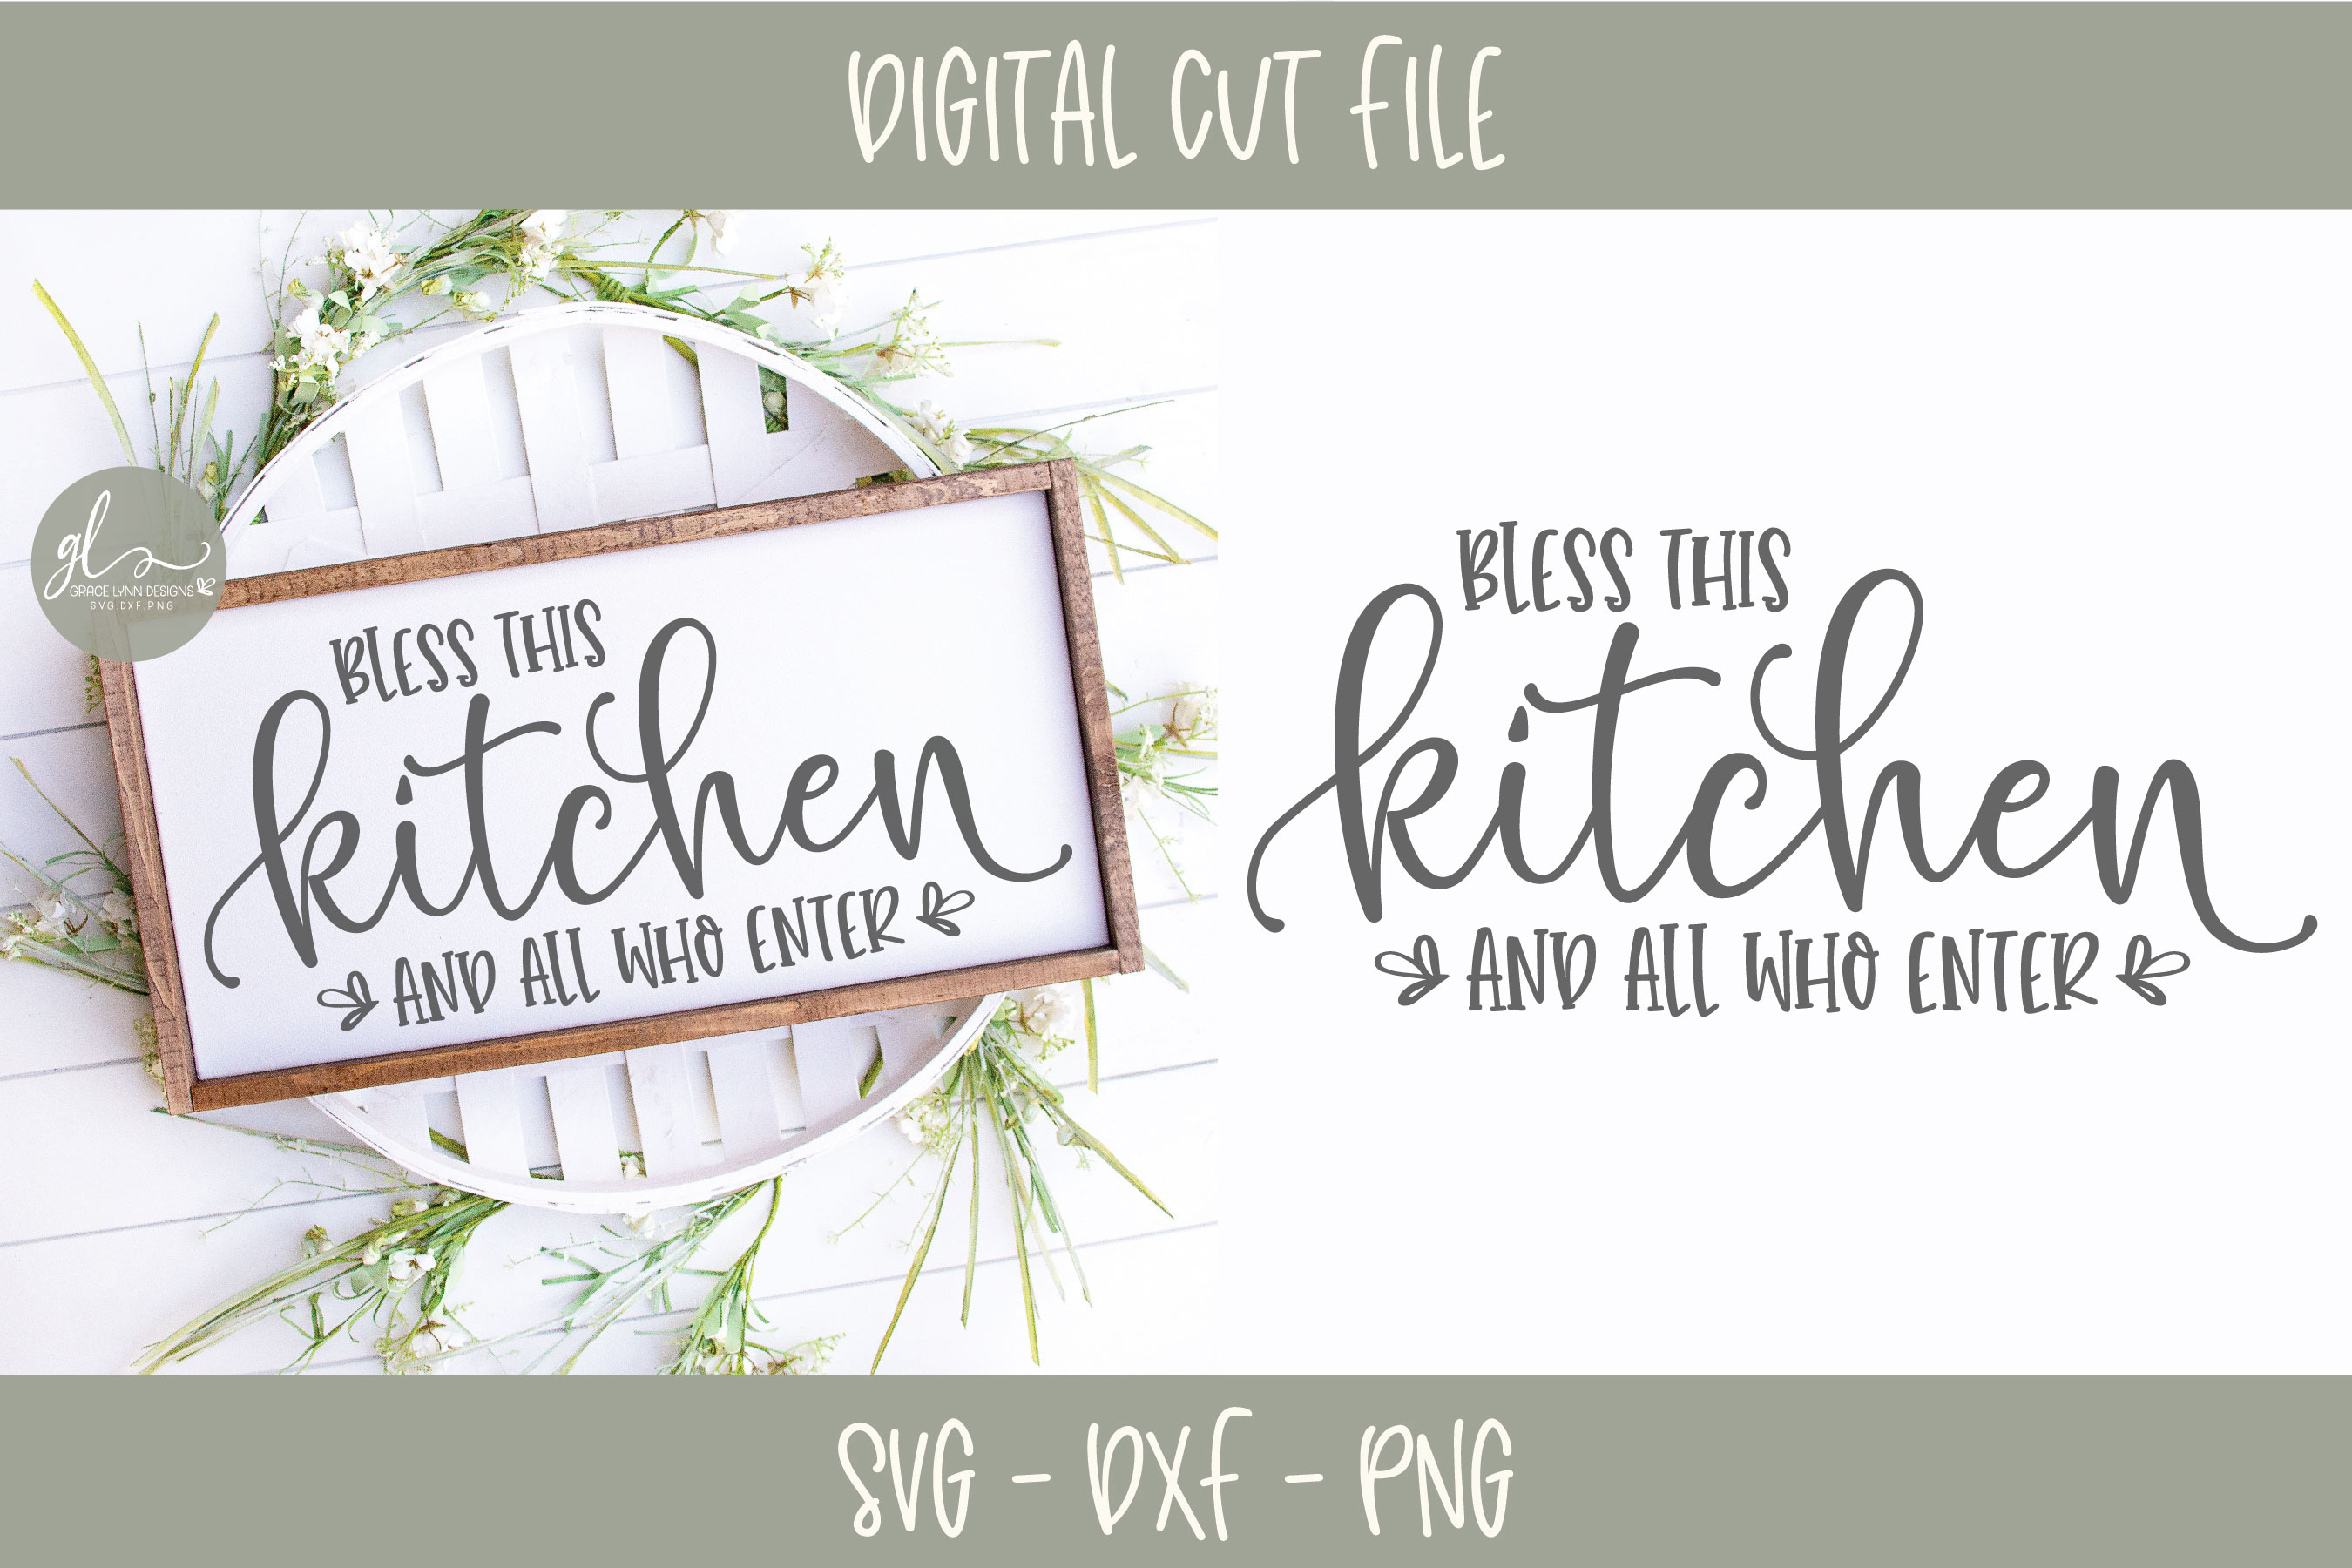 Bless This Kitchen And All Who Enter - Kitchen SVG Cut File example image 1